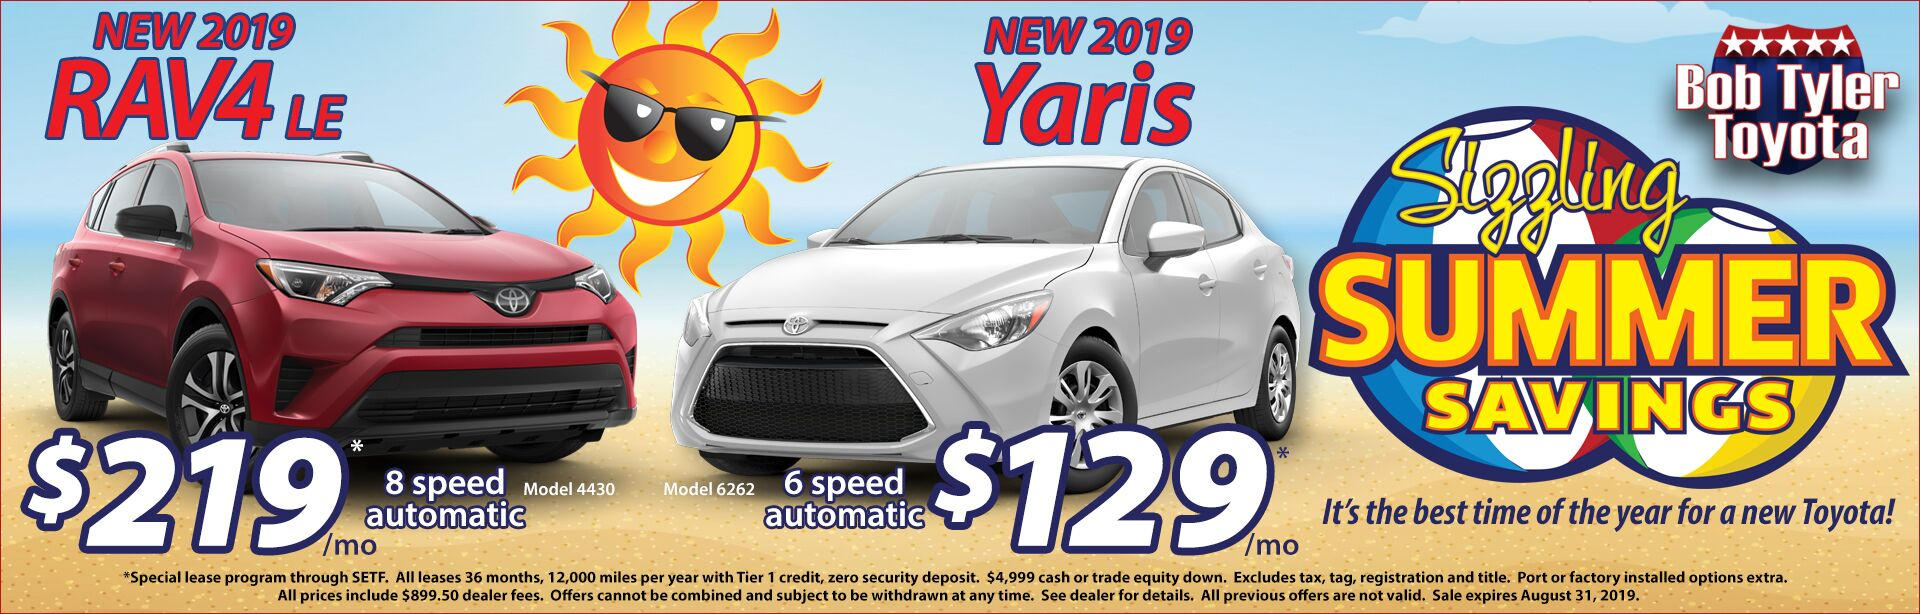 RAV4 Yaris Summer Offer